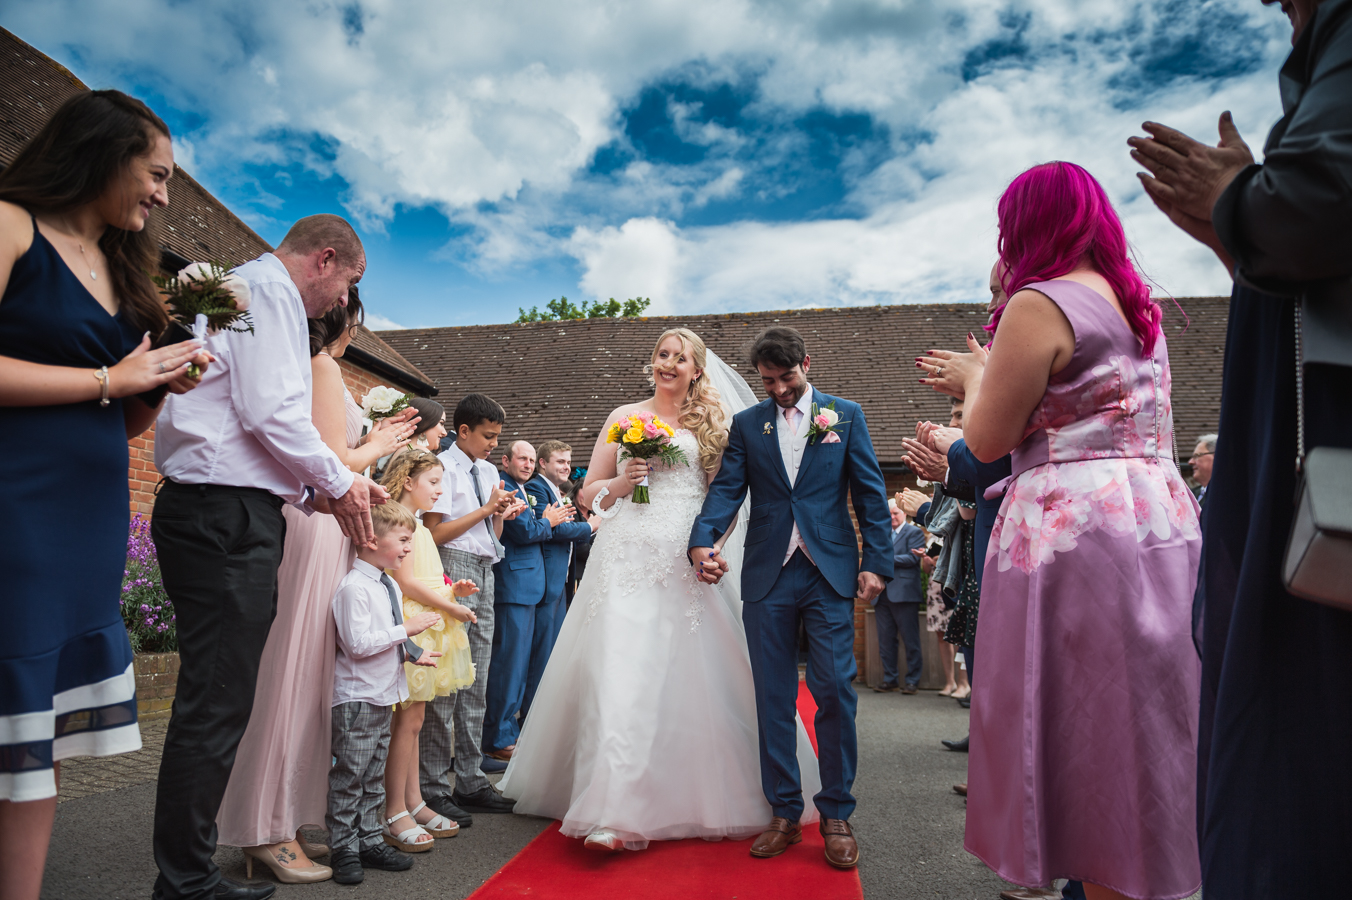 weddings at windmill village hotel by best wedding photographer west midlands